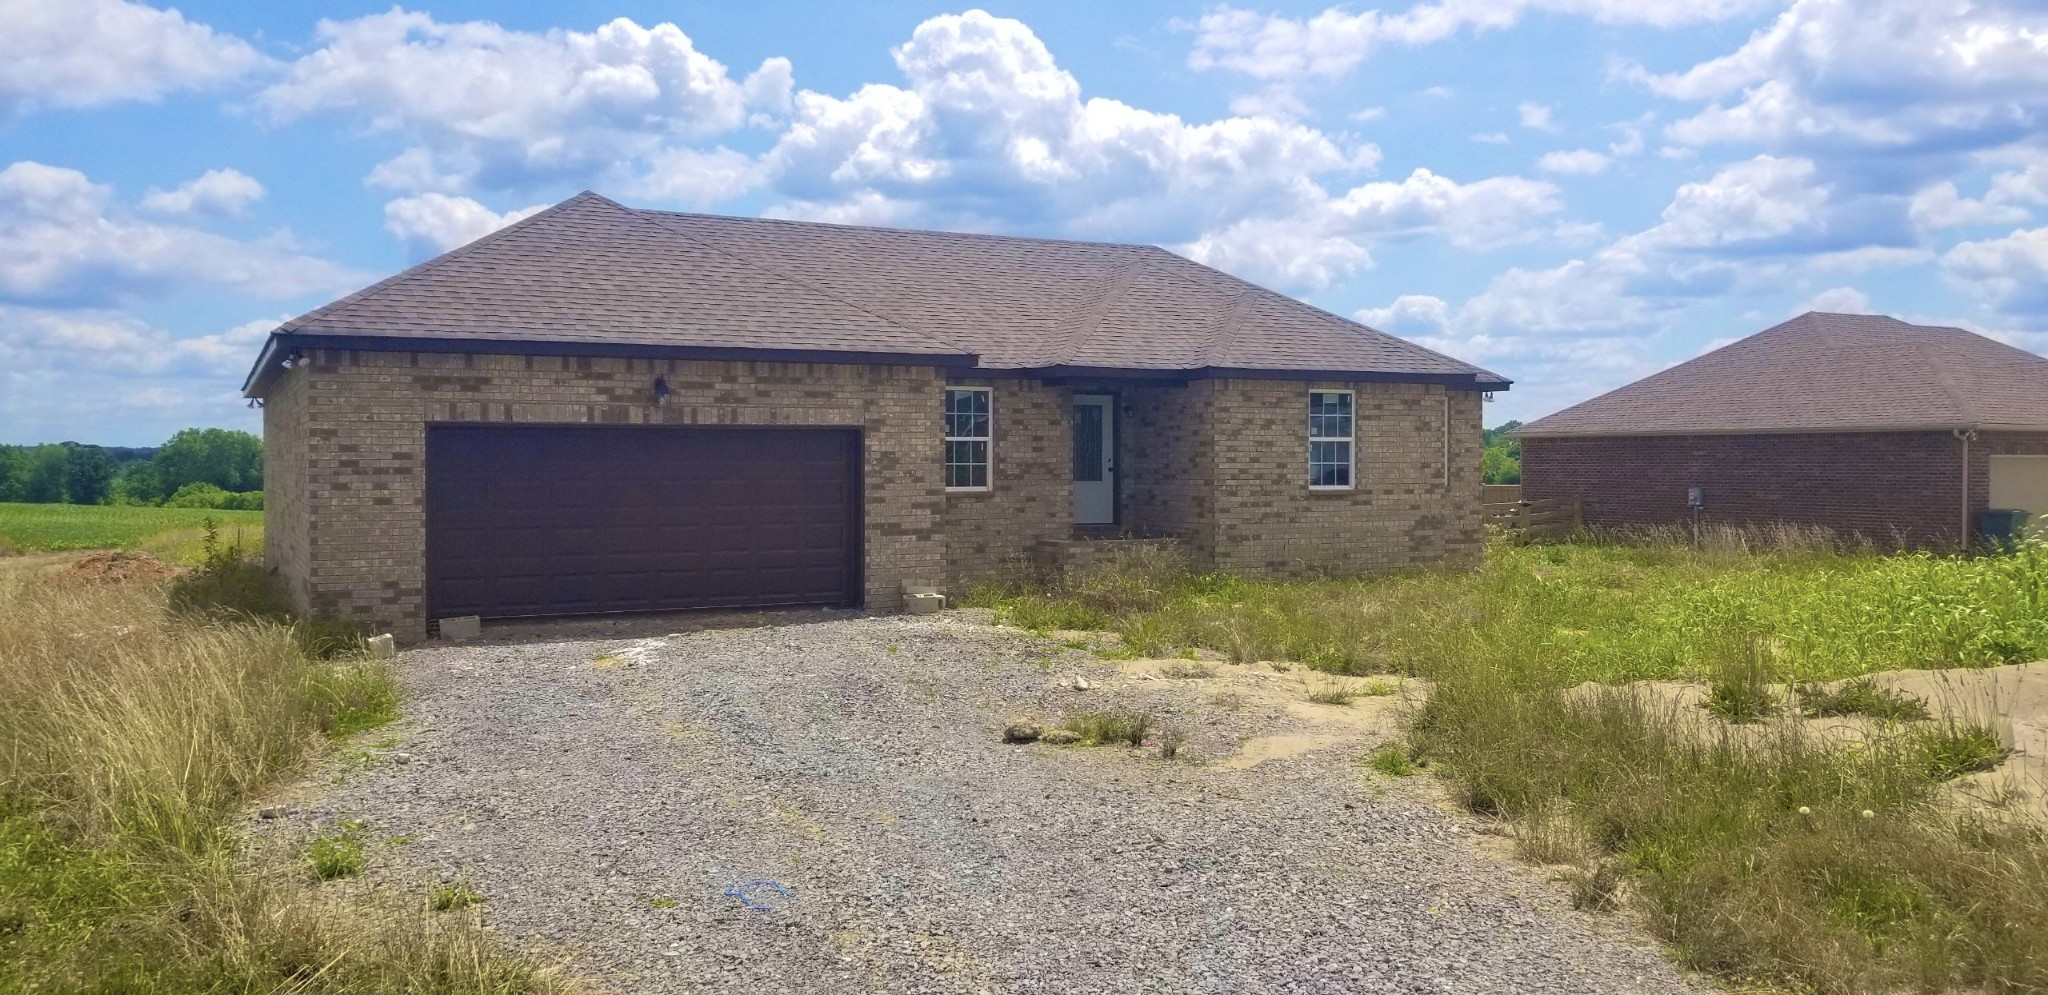 416 Fowler Ford Rd Property Photo - Portland, TN real estate listing